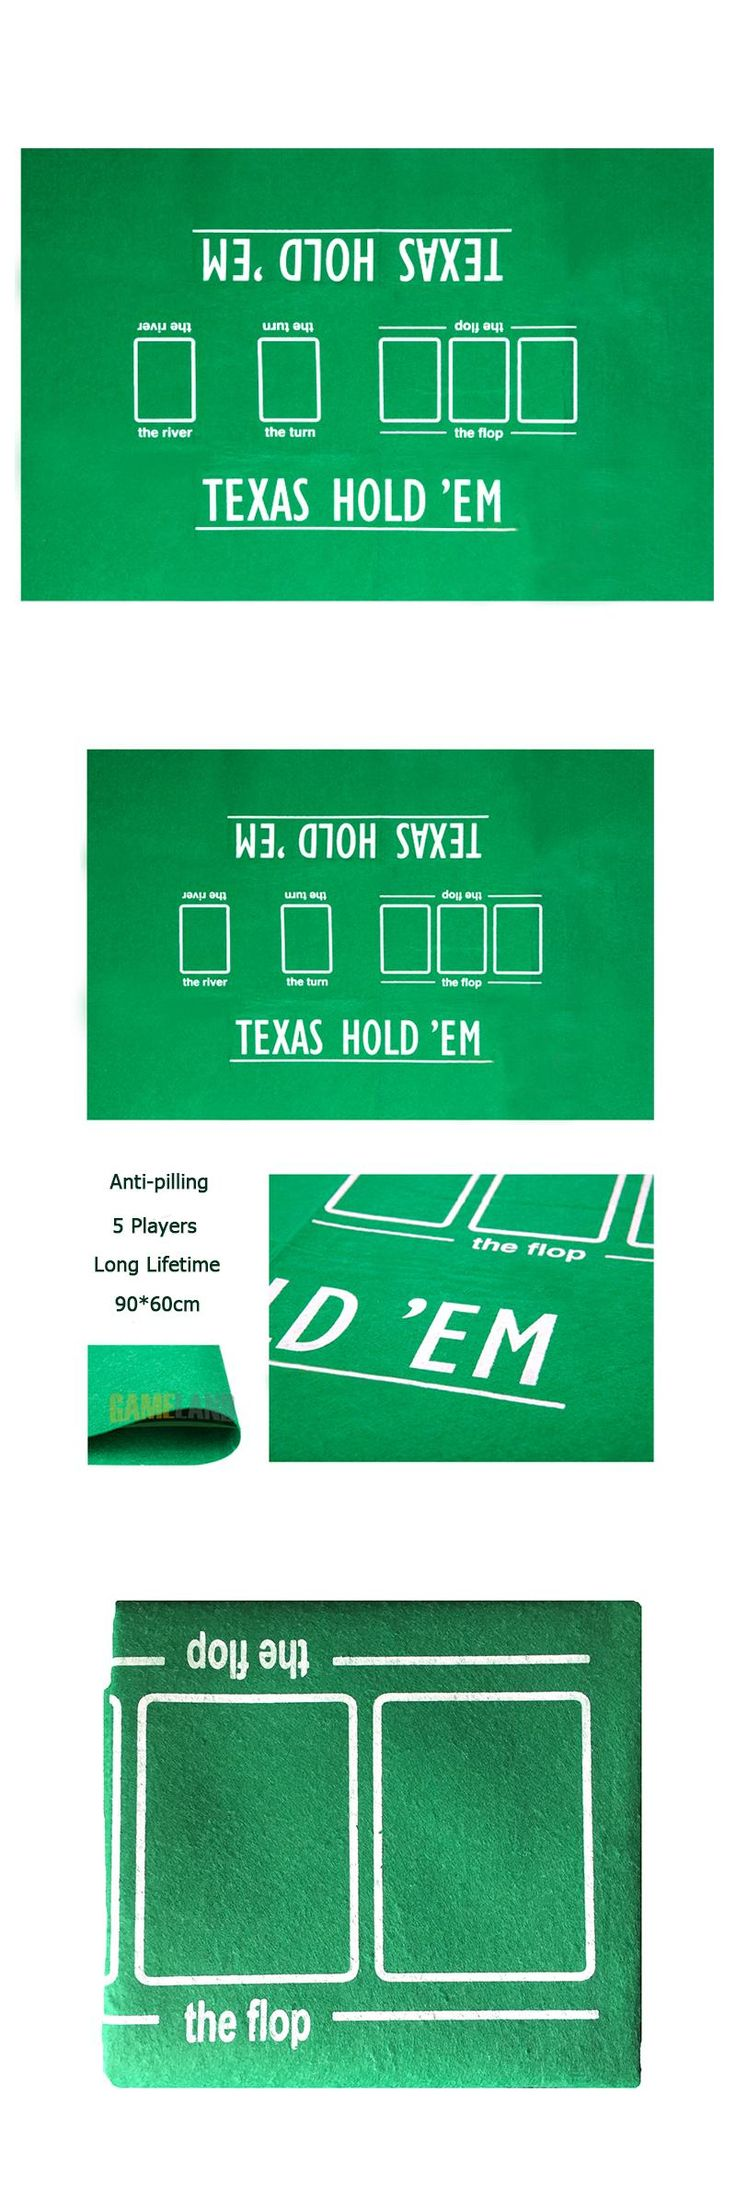 [Visit to Buy] 60*90cm 5 Players Anti-pilling Texas Hold'em Poker Table Cloth Poker Layout Set Poker Felt Layouts #Advertisement